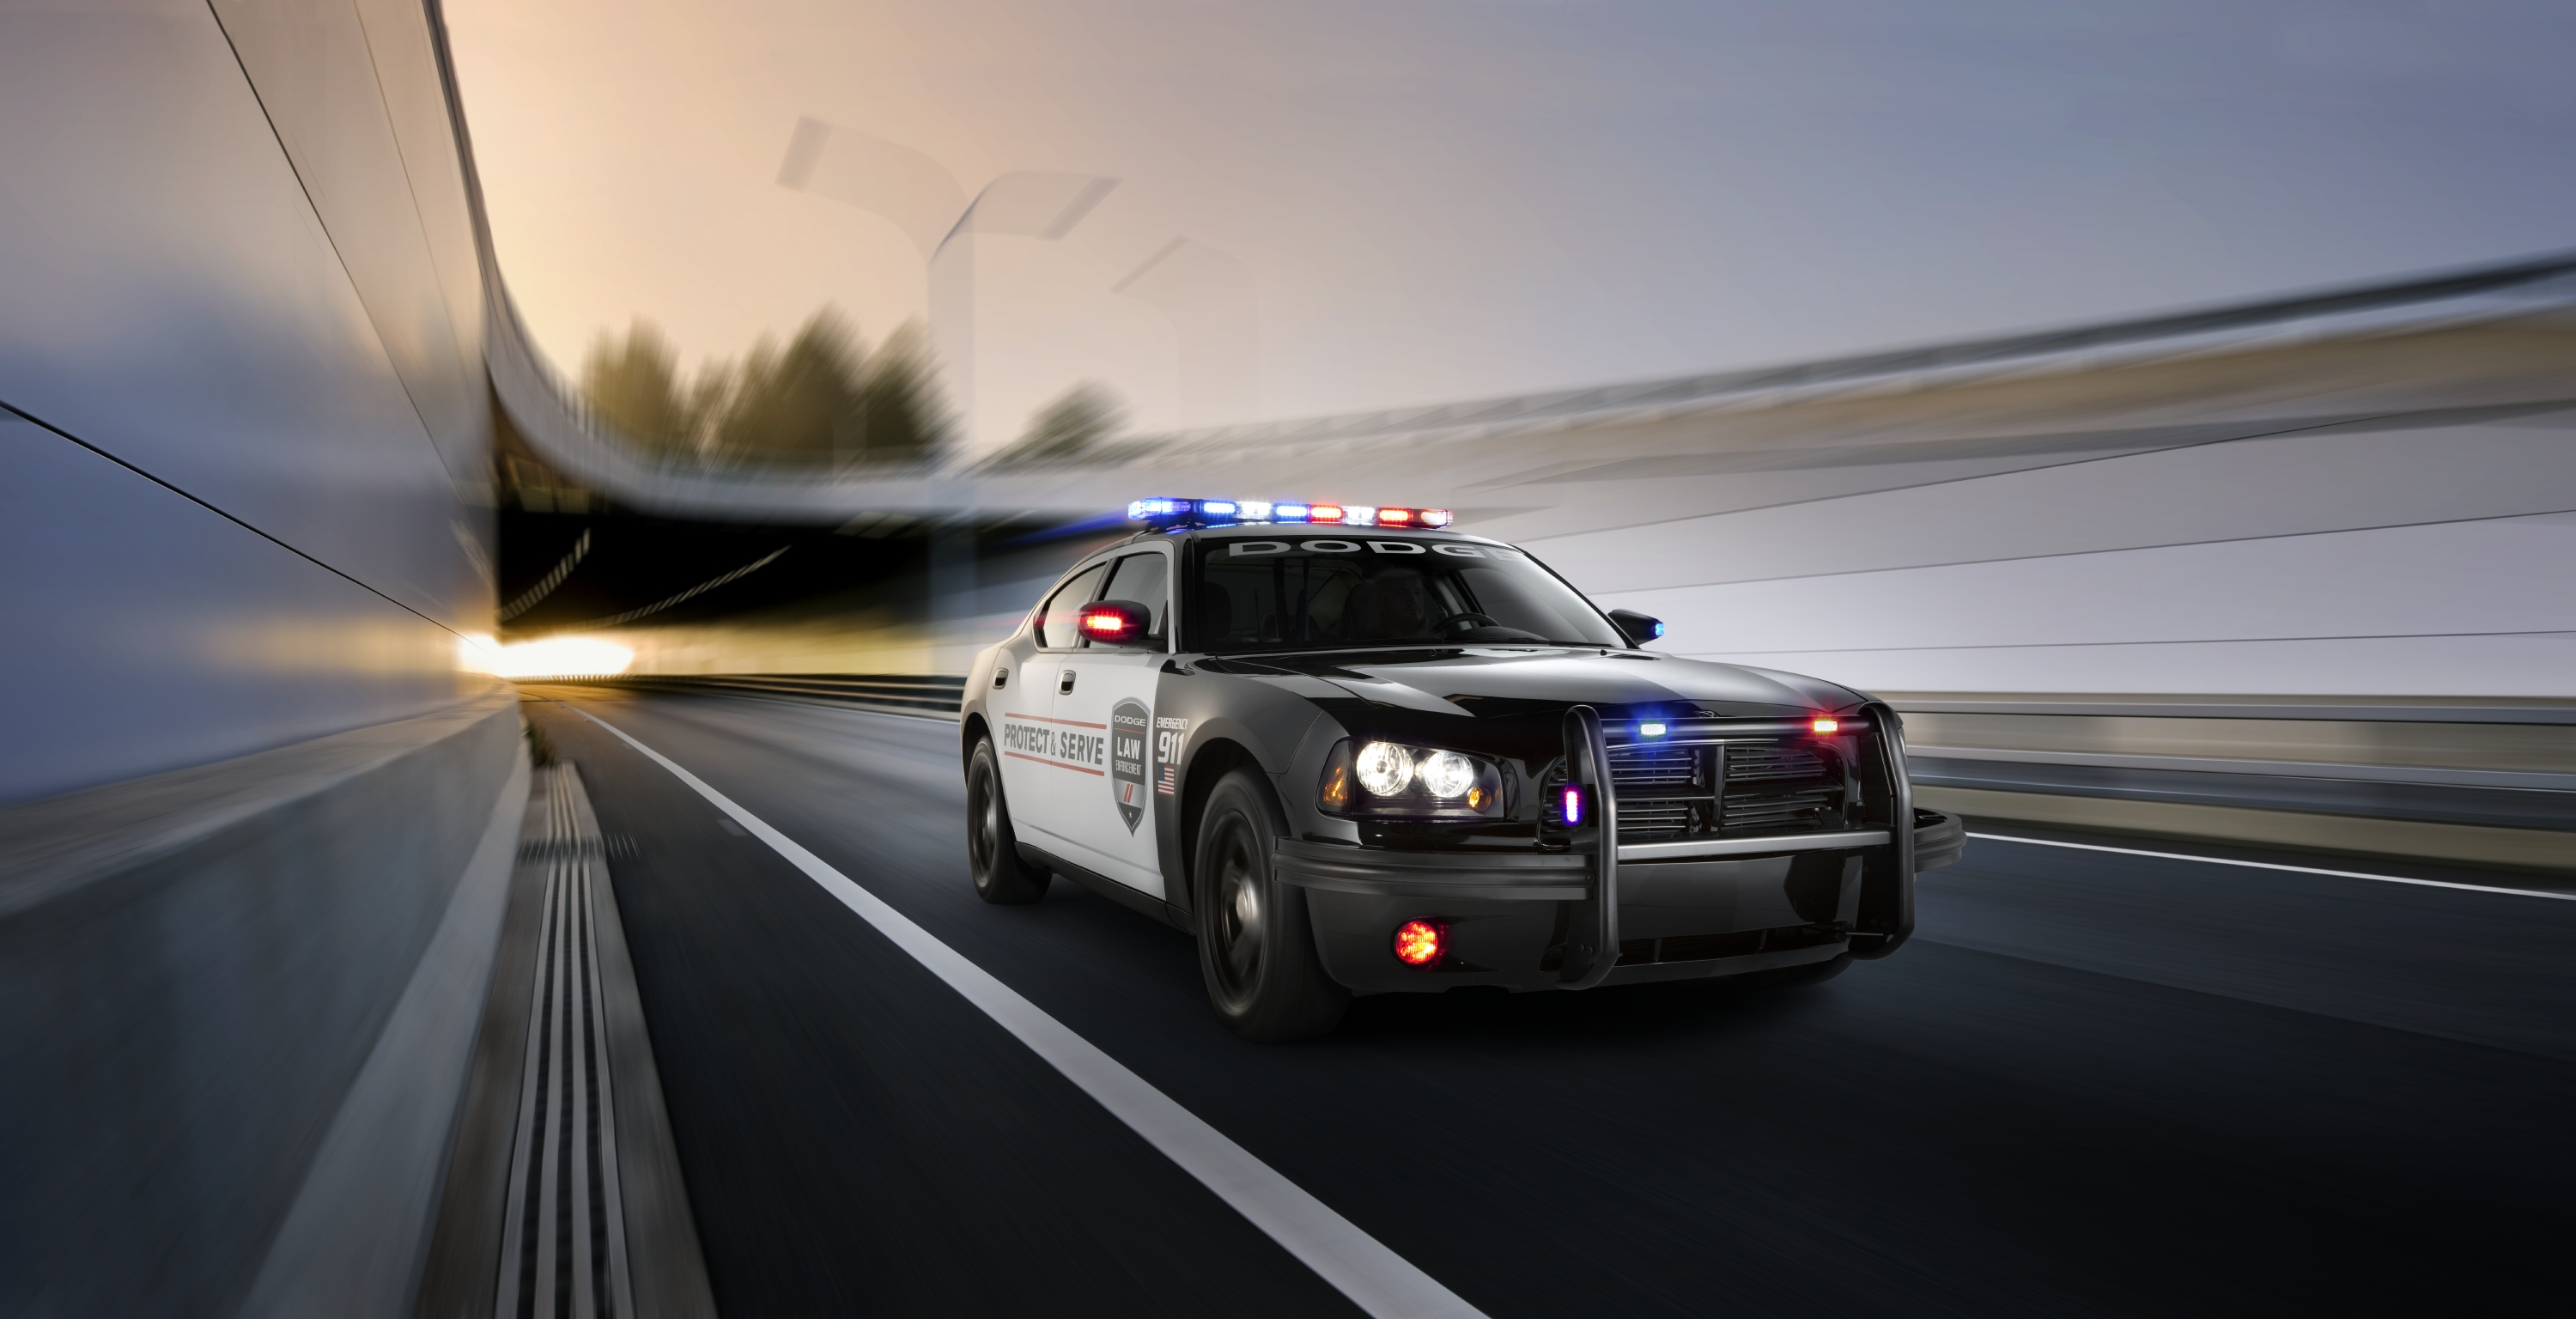 police full hd wallpaper and background image | 3000x1536 | id:151142